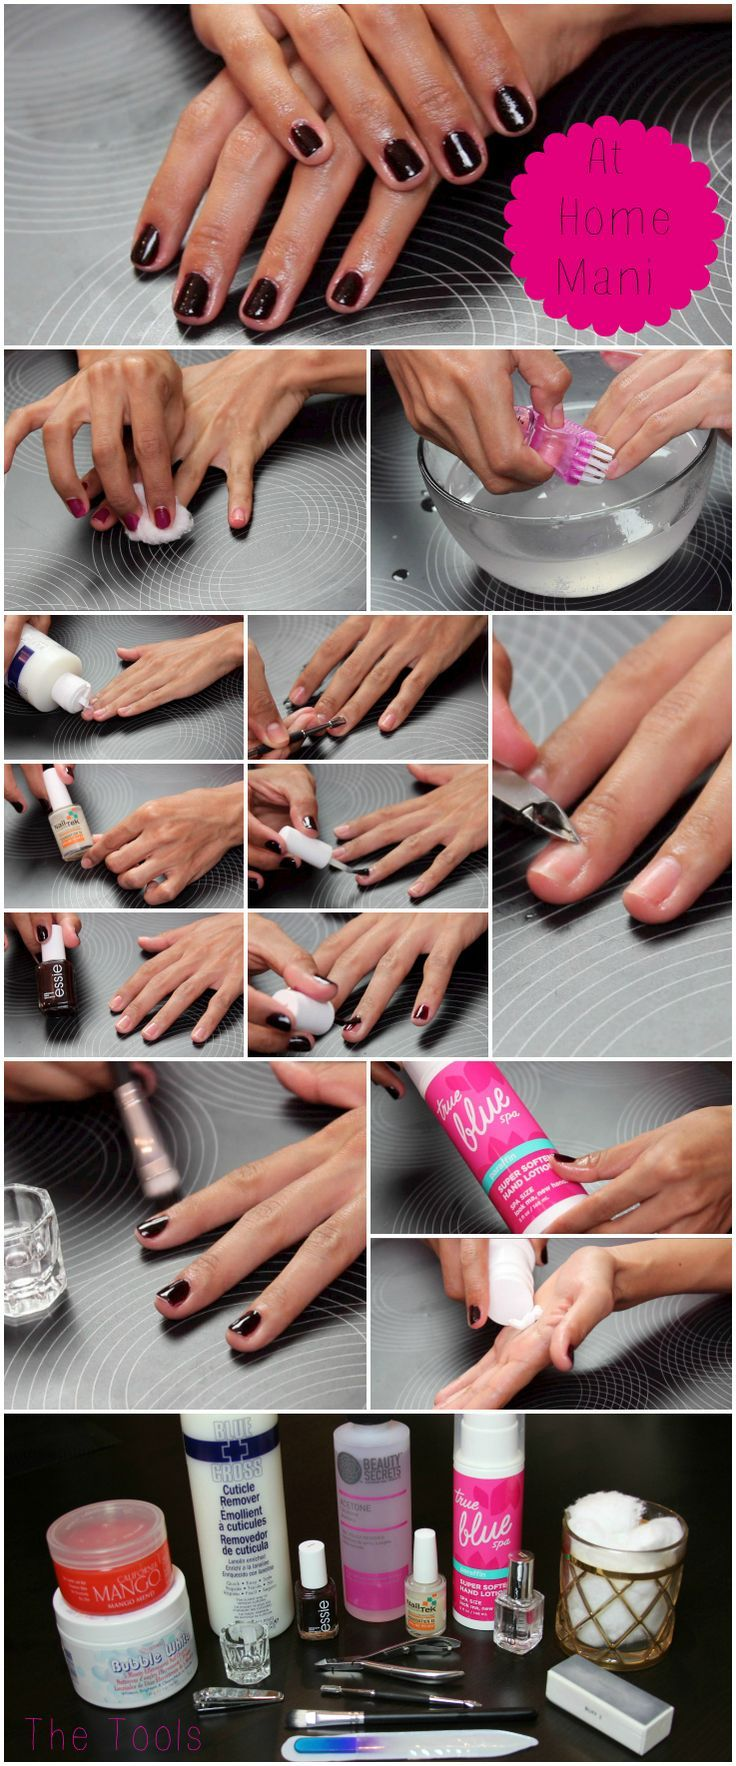 18 best Nailed It images on Pinterest | Nail polishes, Nailed it ...